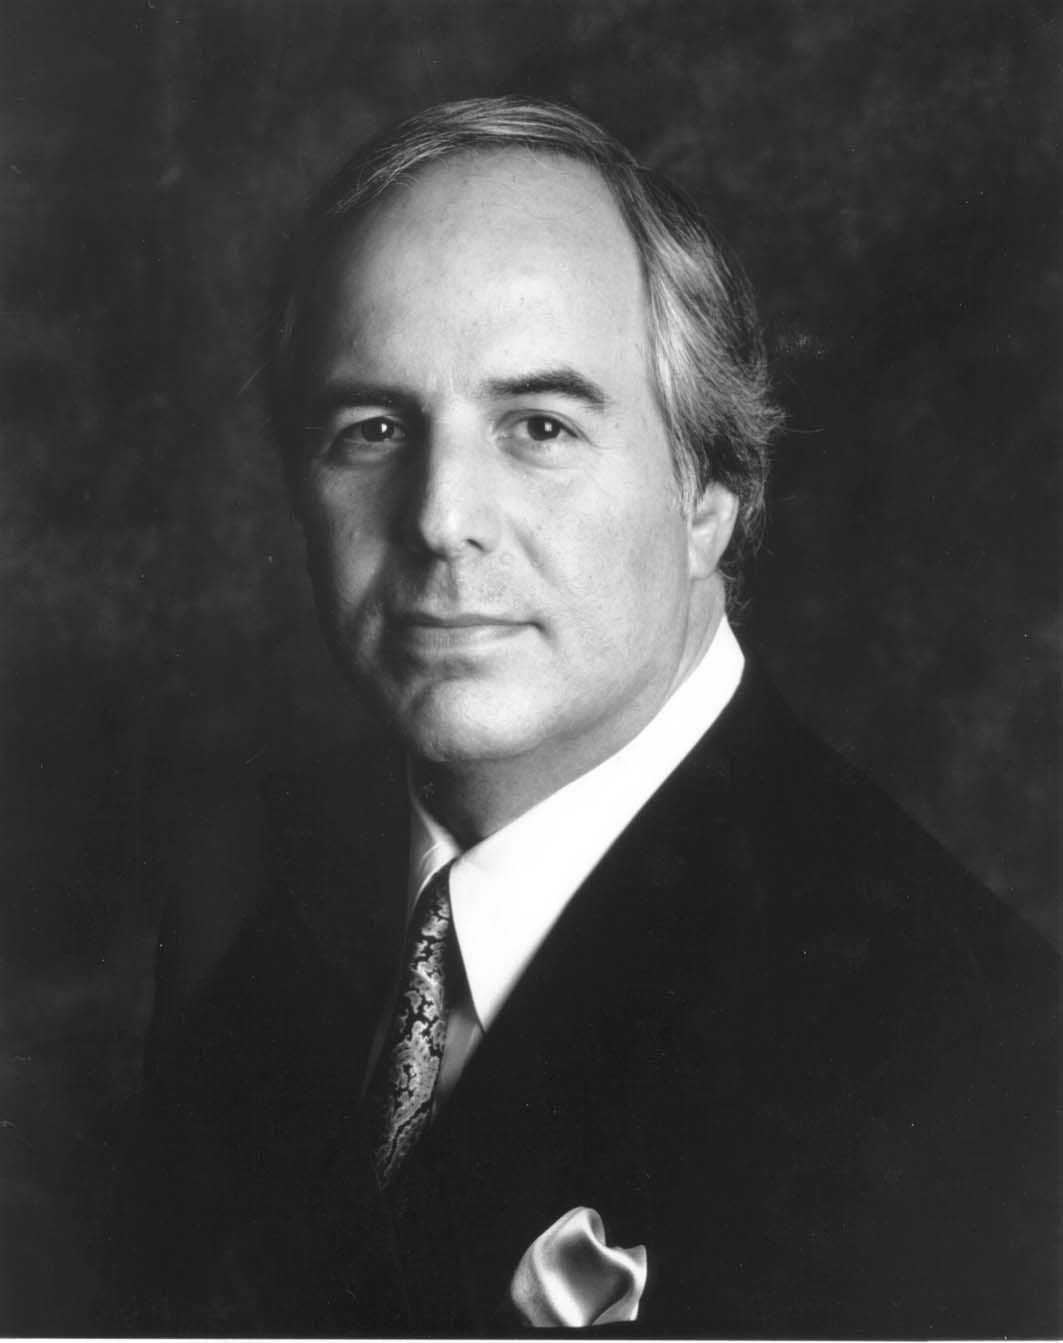 frank abagnale - photo #2